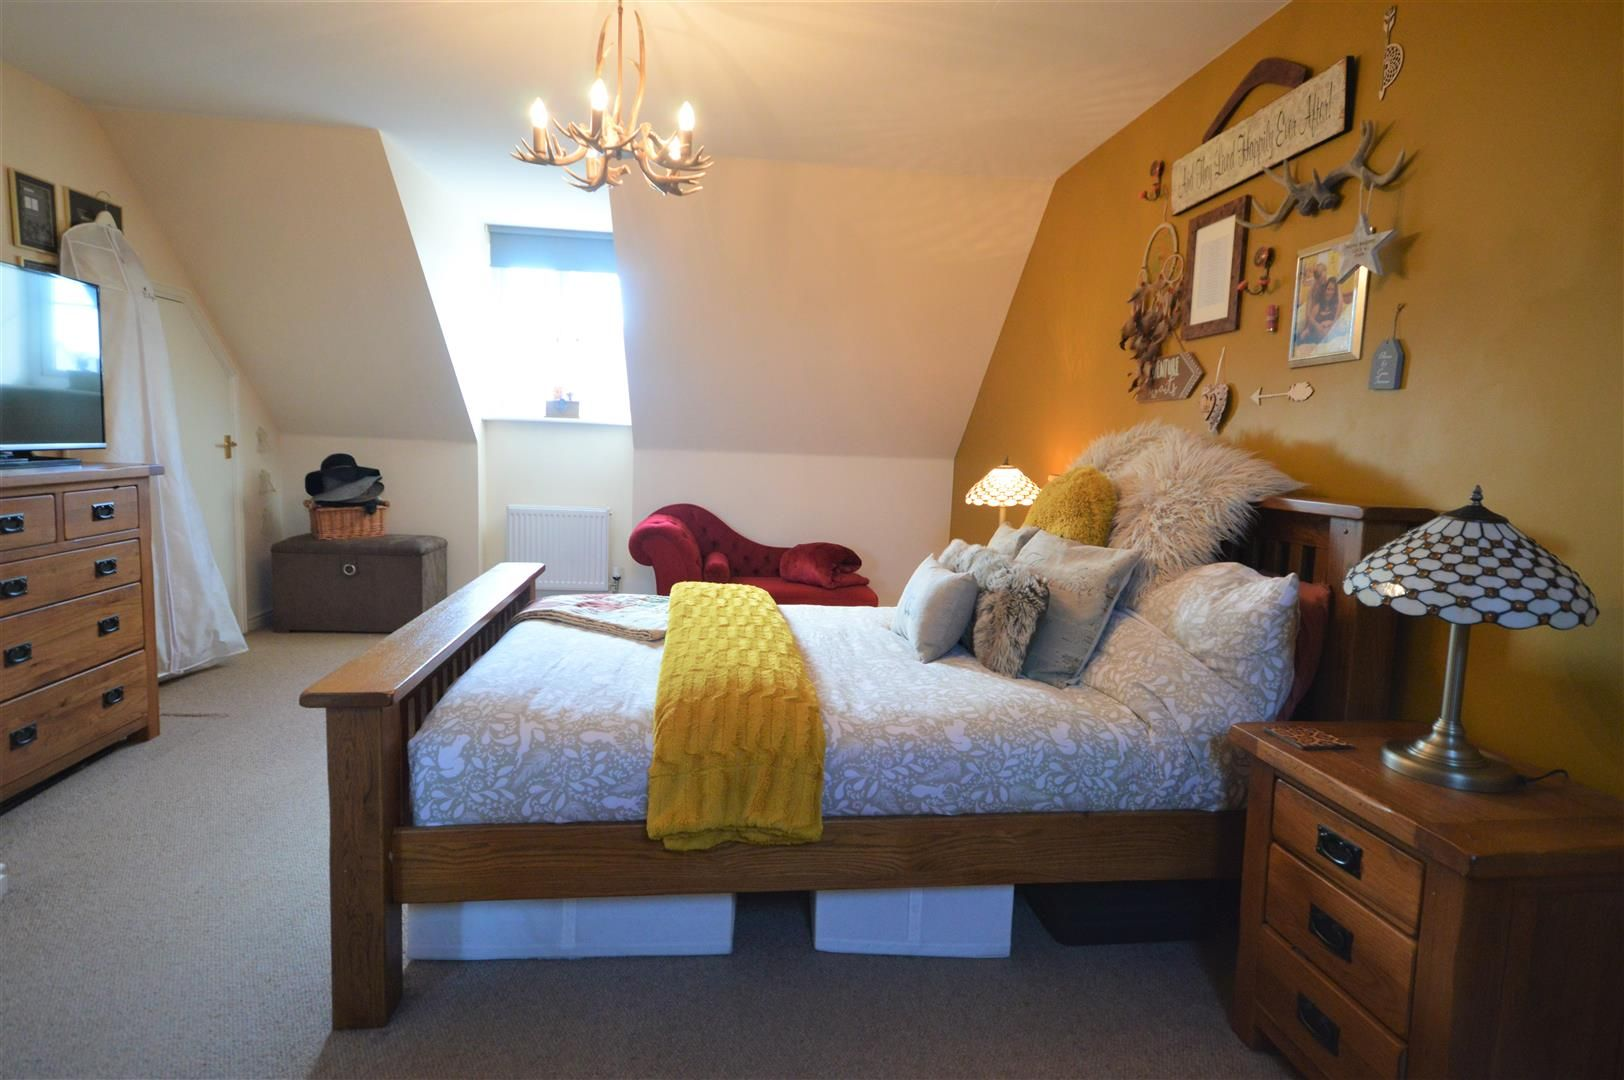 4 bed semi-detached for sale in Leominster 16